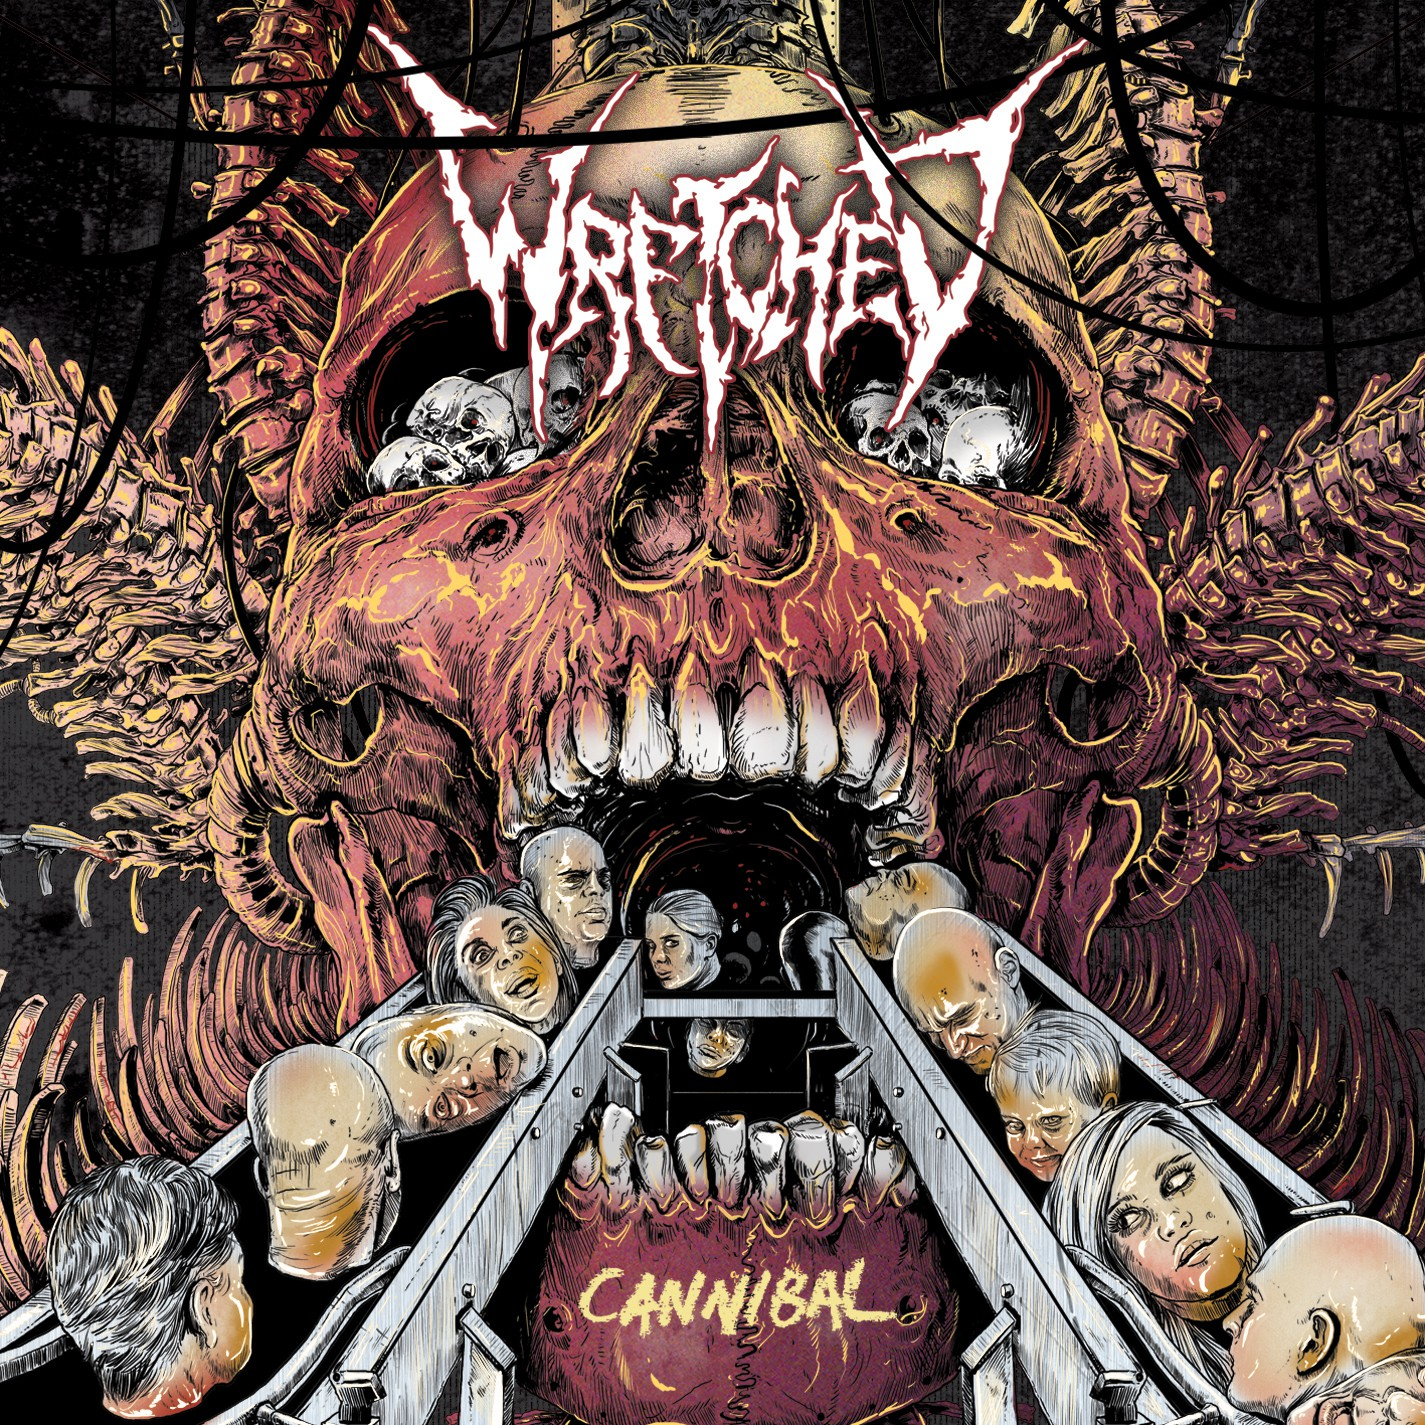 Wretched - Cannibal | Ghost Cult MagazineGhost Cult Magazine